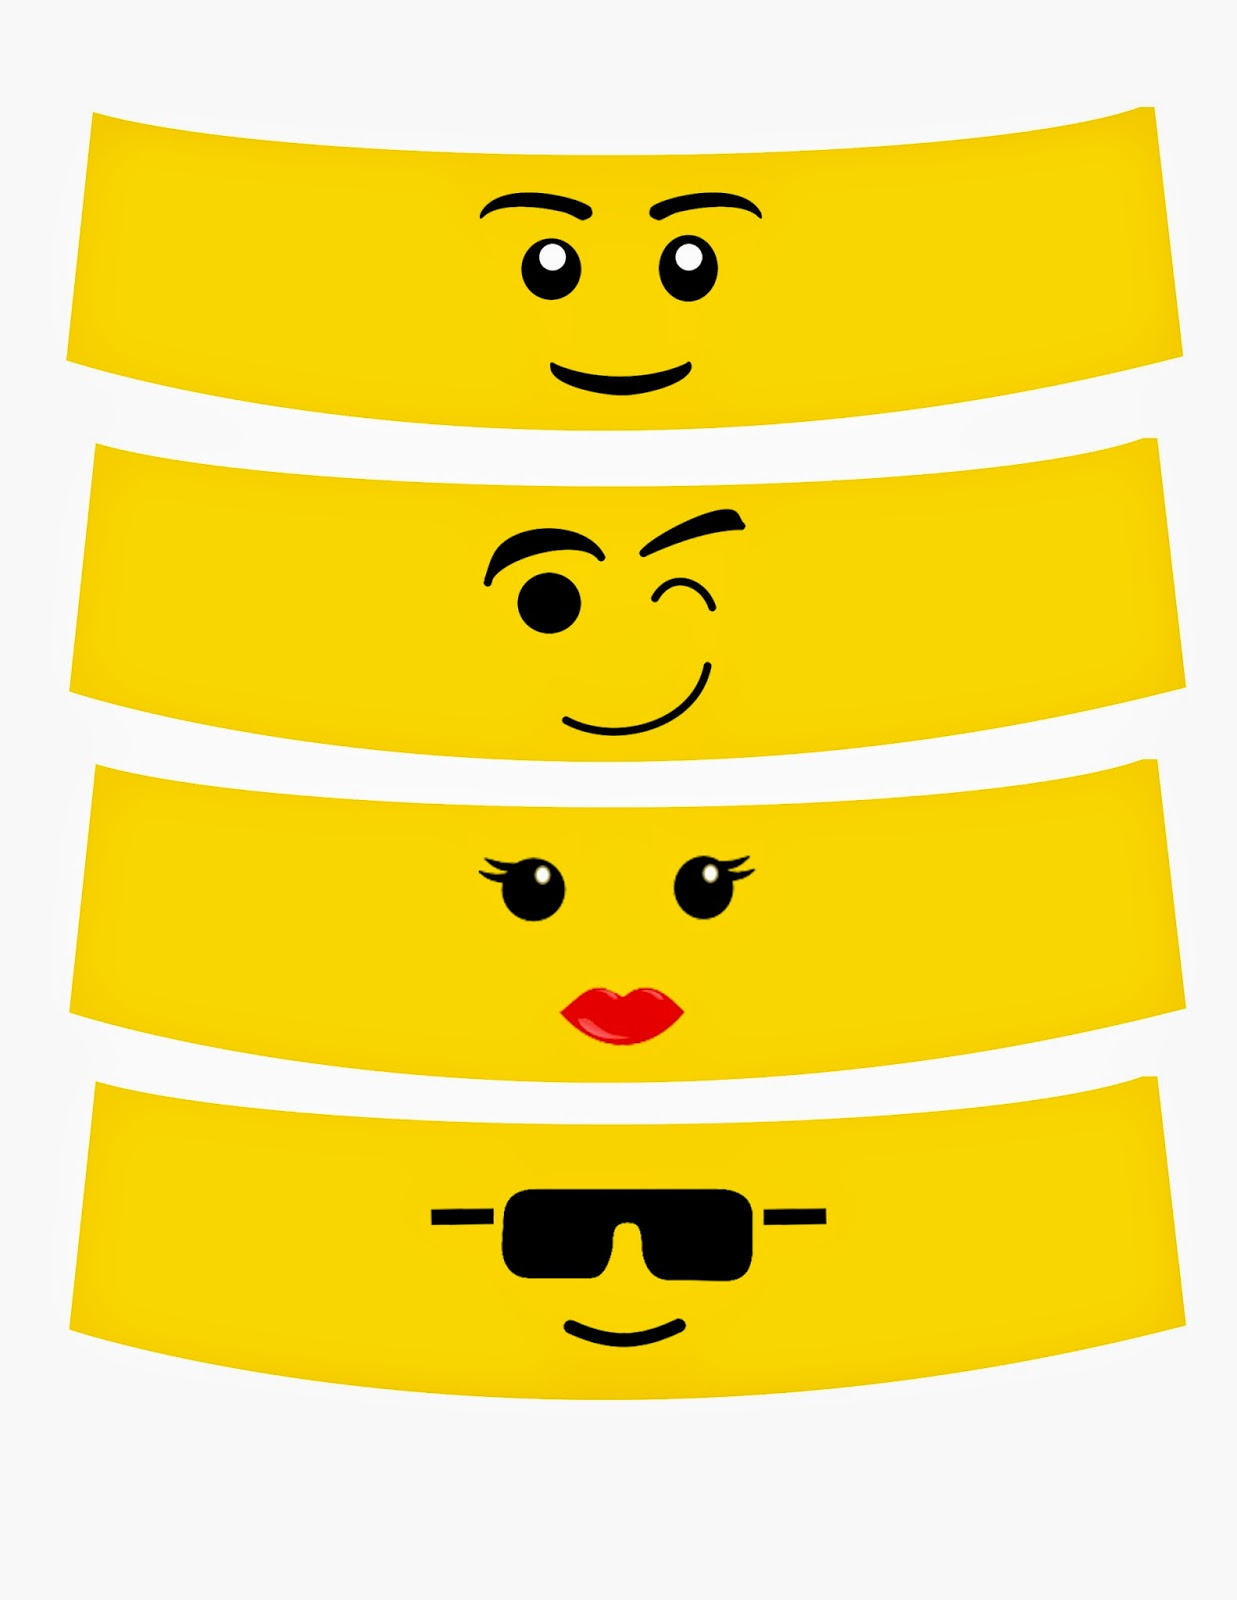 Eloquent image intended for printable lego faces